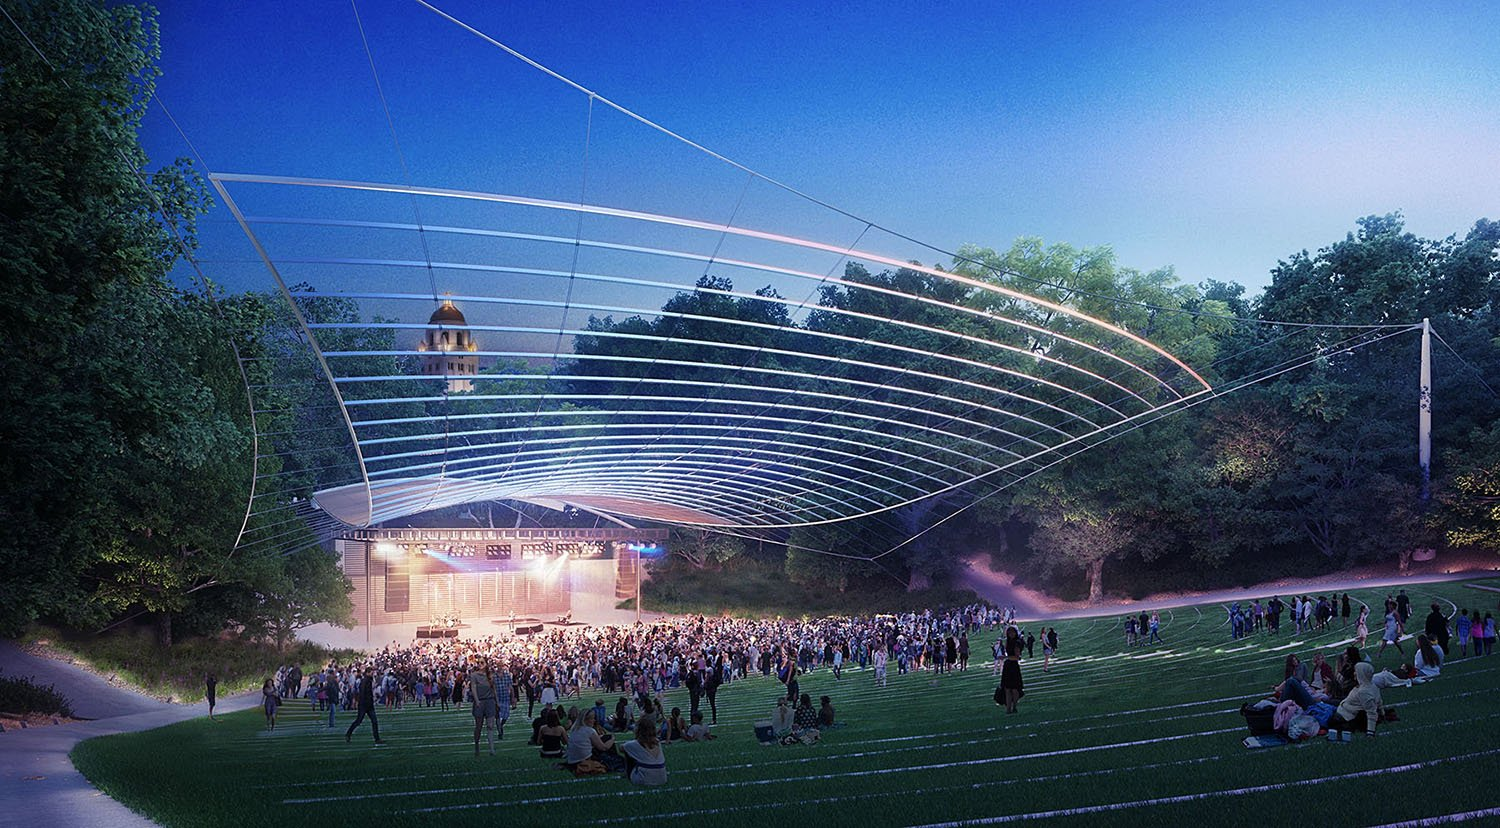 When viewed from the rear of the amphitheater's bowl to the south, the arcing linear reflectors visually stack together to create a wide periscopic view of the northern sky. Brooklyn Digital Foundry